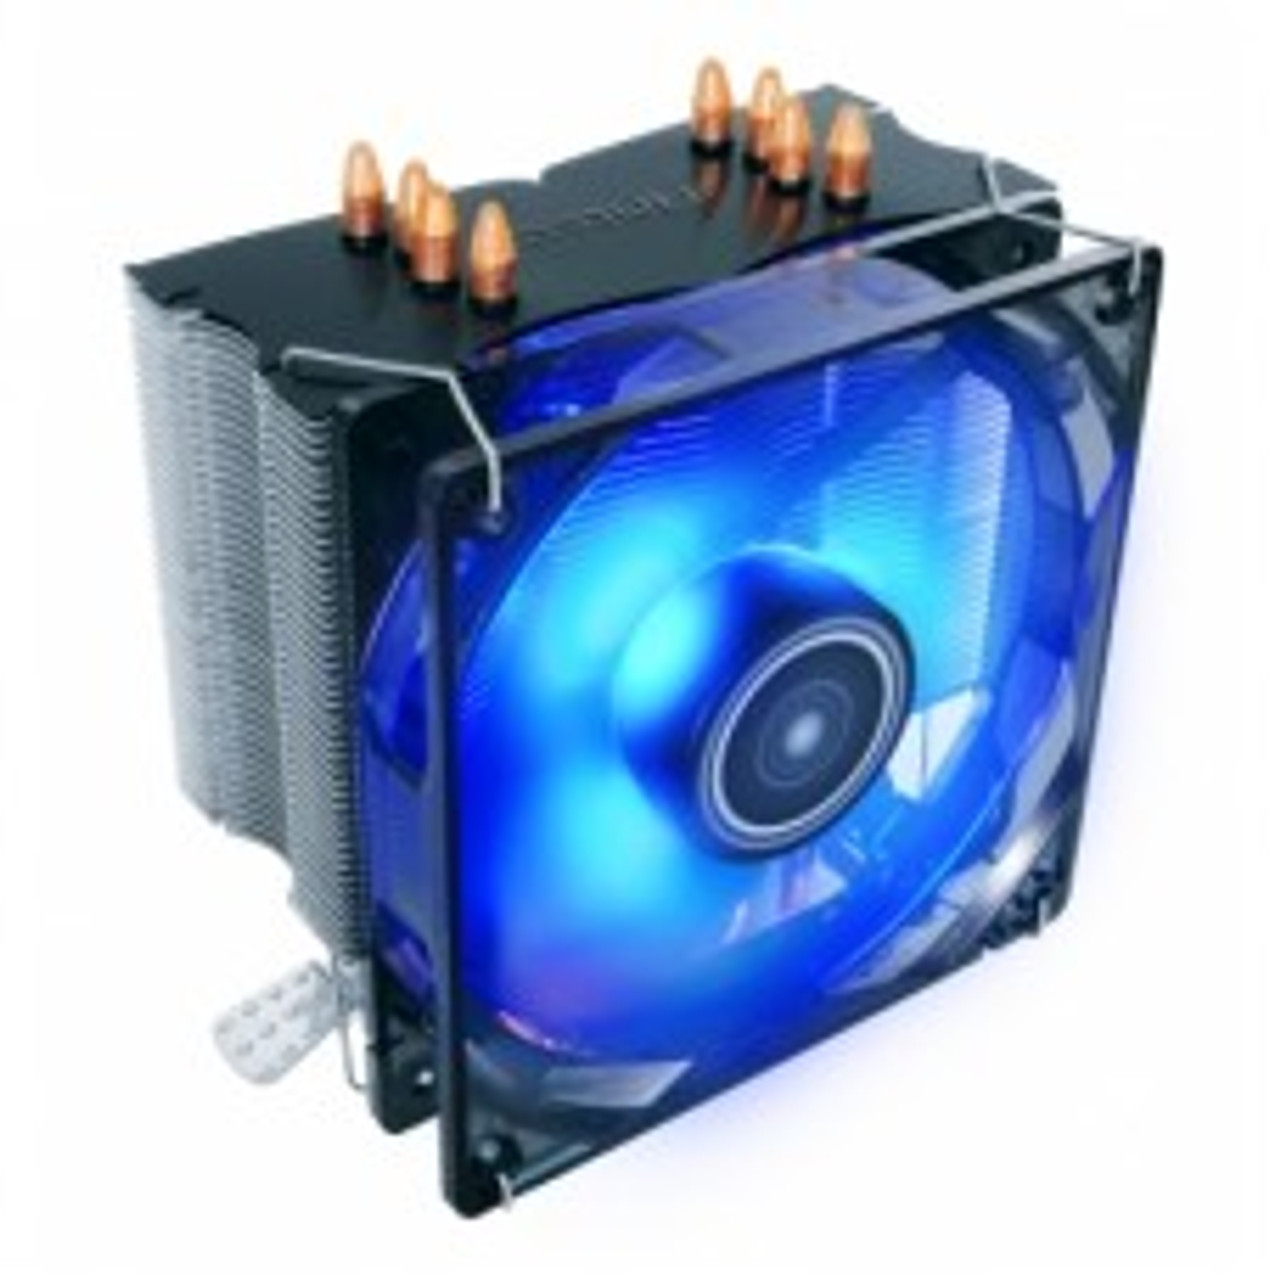 Product image for Antec CPU Air Cooler C400 (120mm fan with LED) with Copper Coldplate | CX Computer Superstore